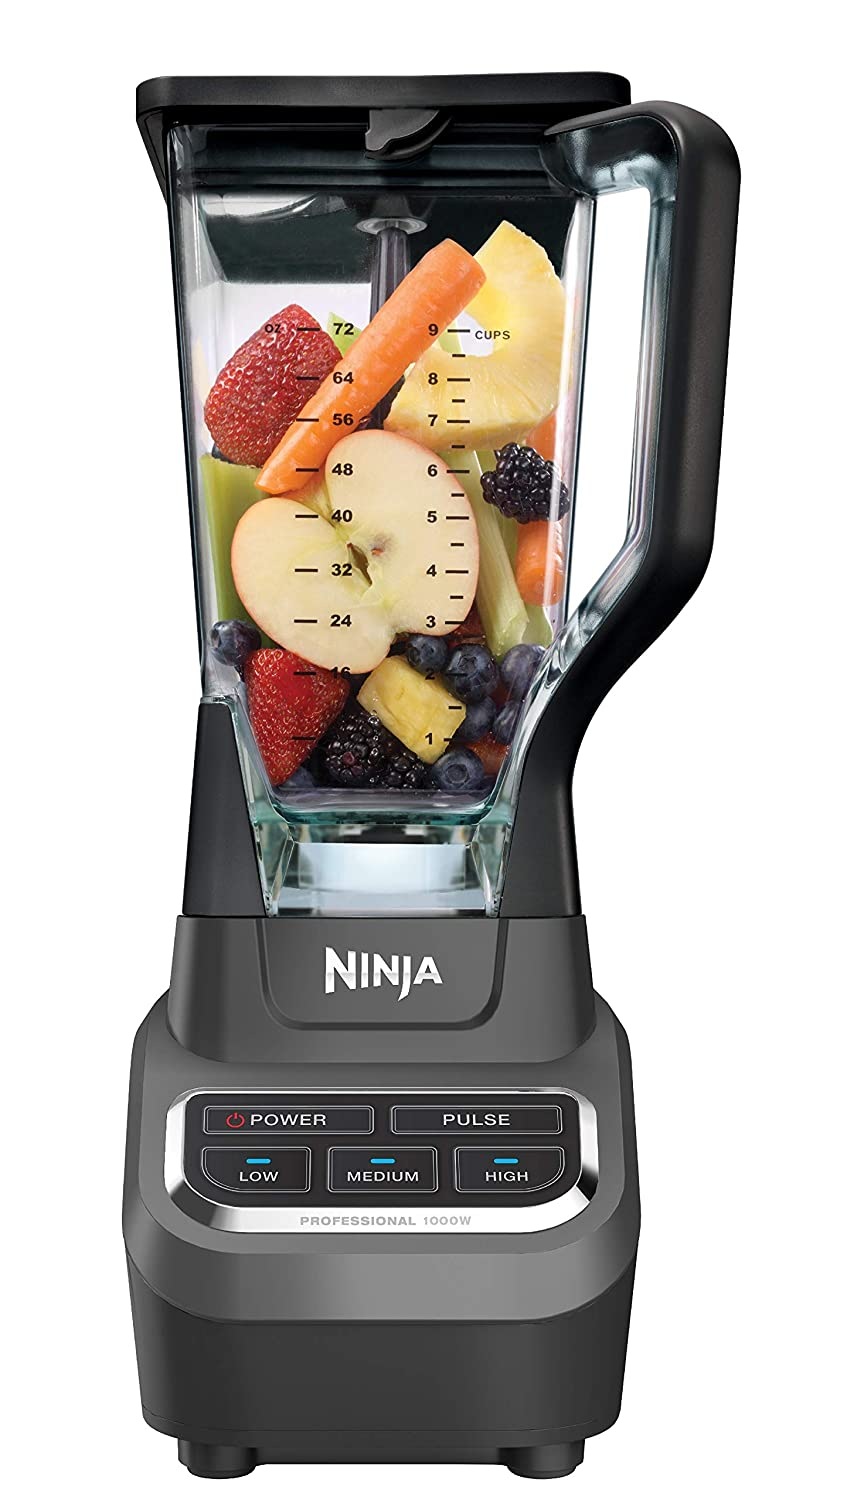 Ninja Professional Countertop Blender.